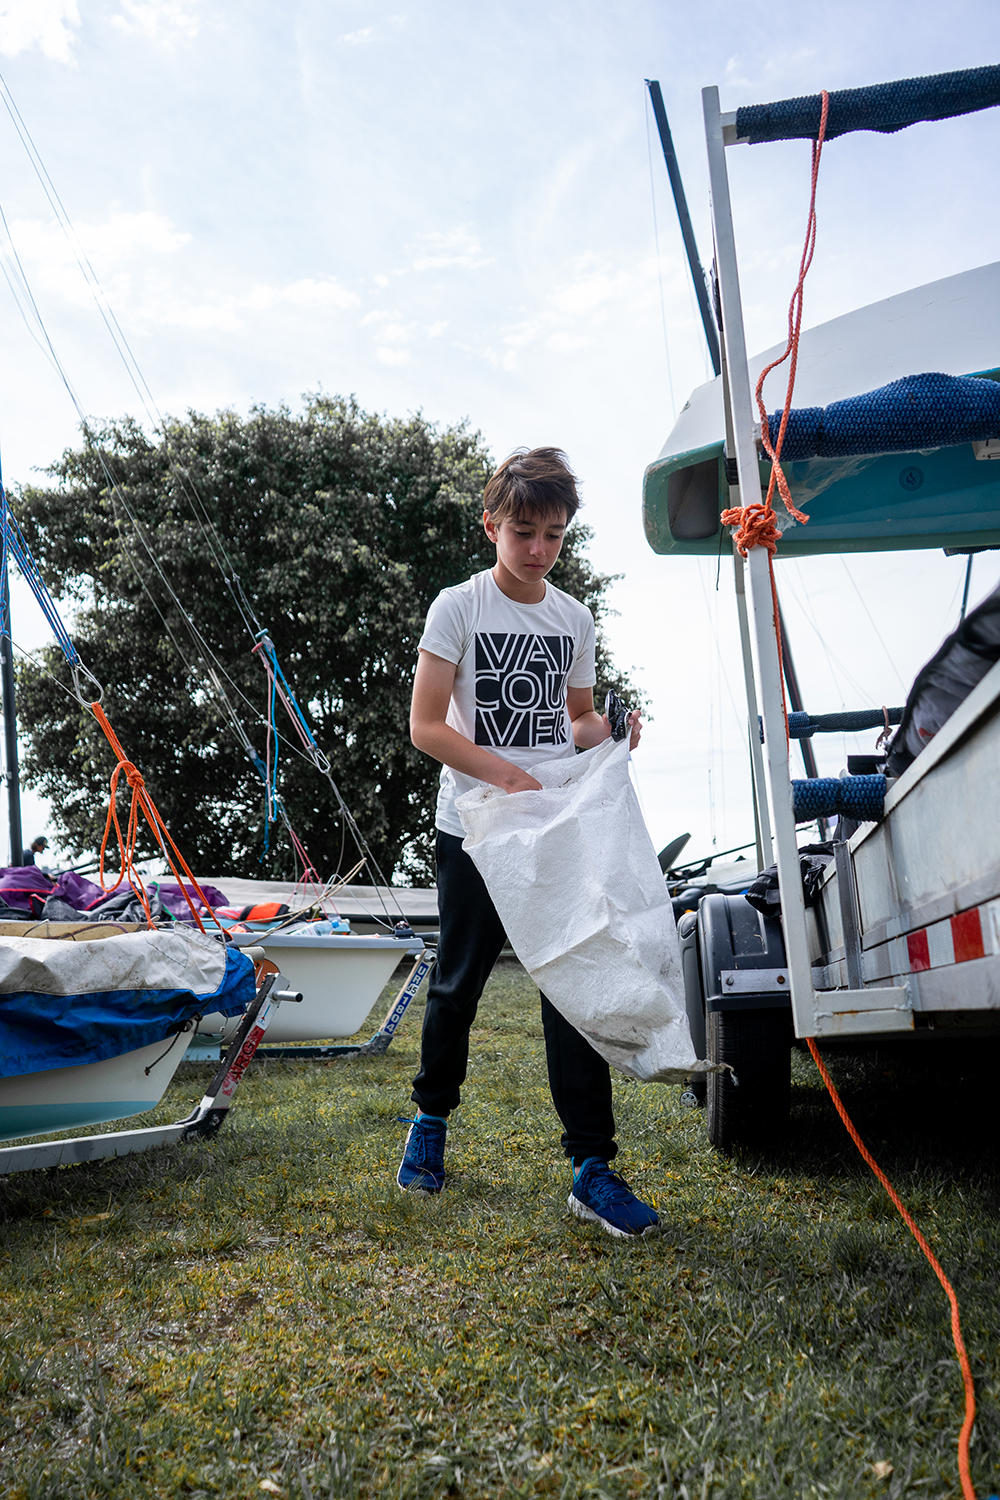 Sailors clean up debris around their sailing center. Photo credit: Unplastify